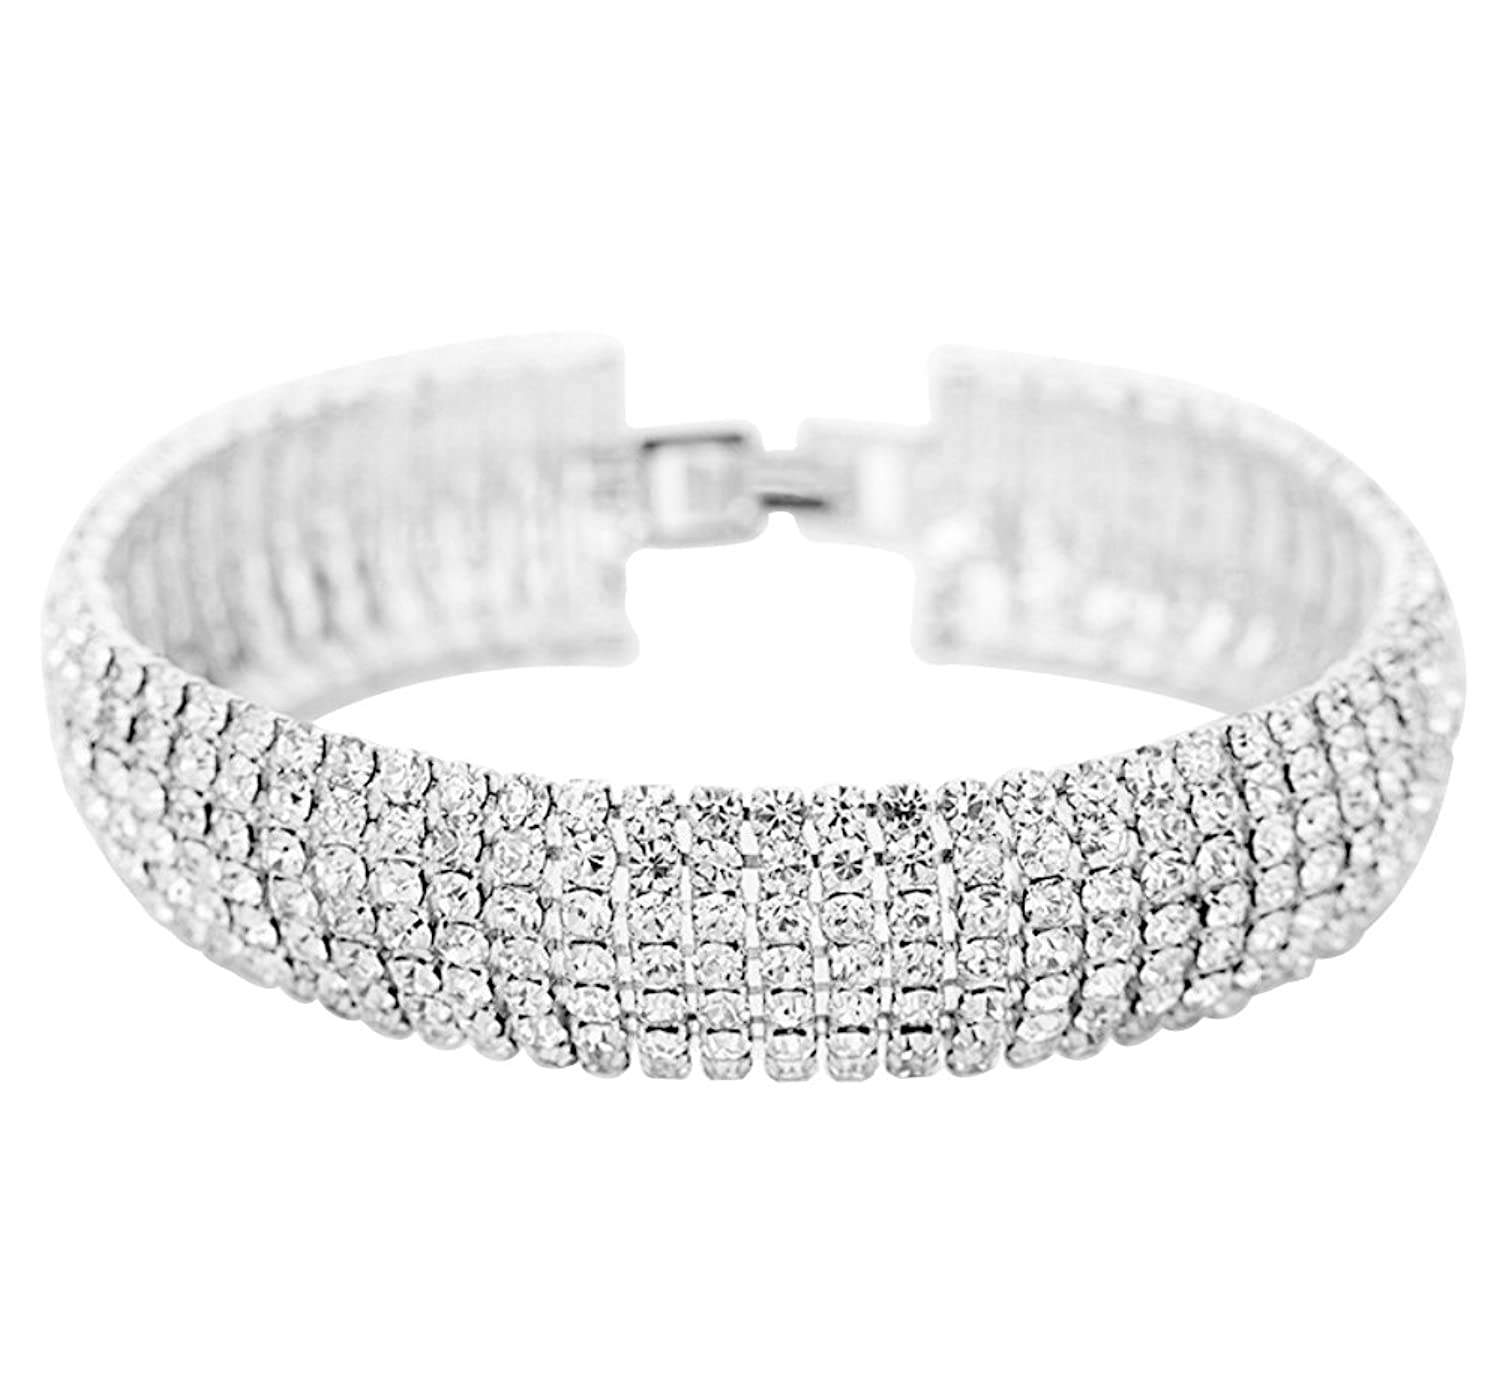 Crystal 6 Row Rhinestone Tennis Bracelet - Gold or Silver Plated w/ Toggle Clasp